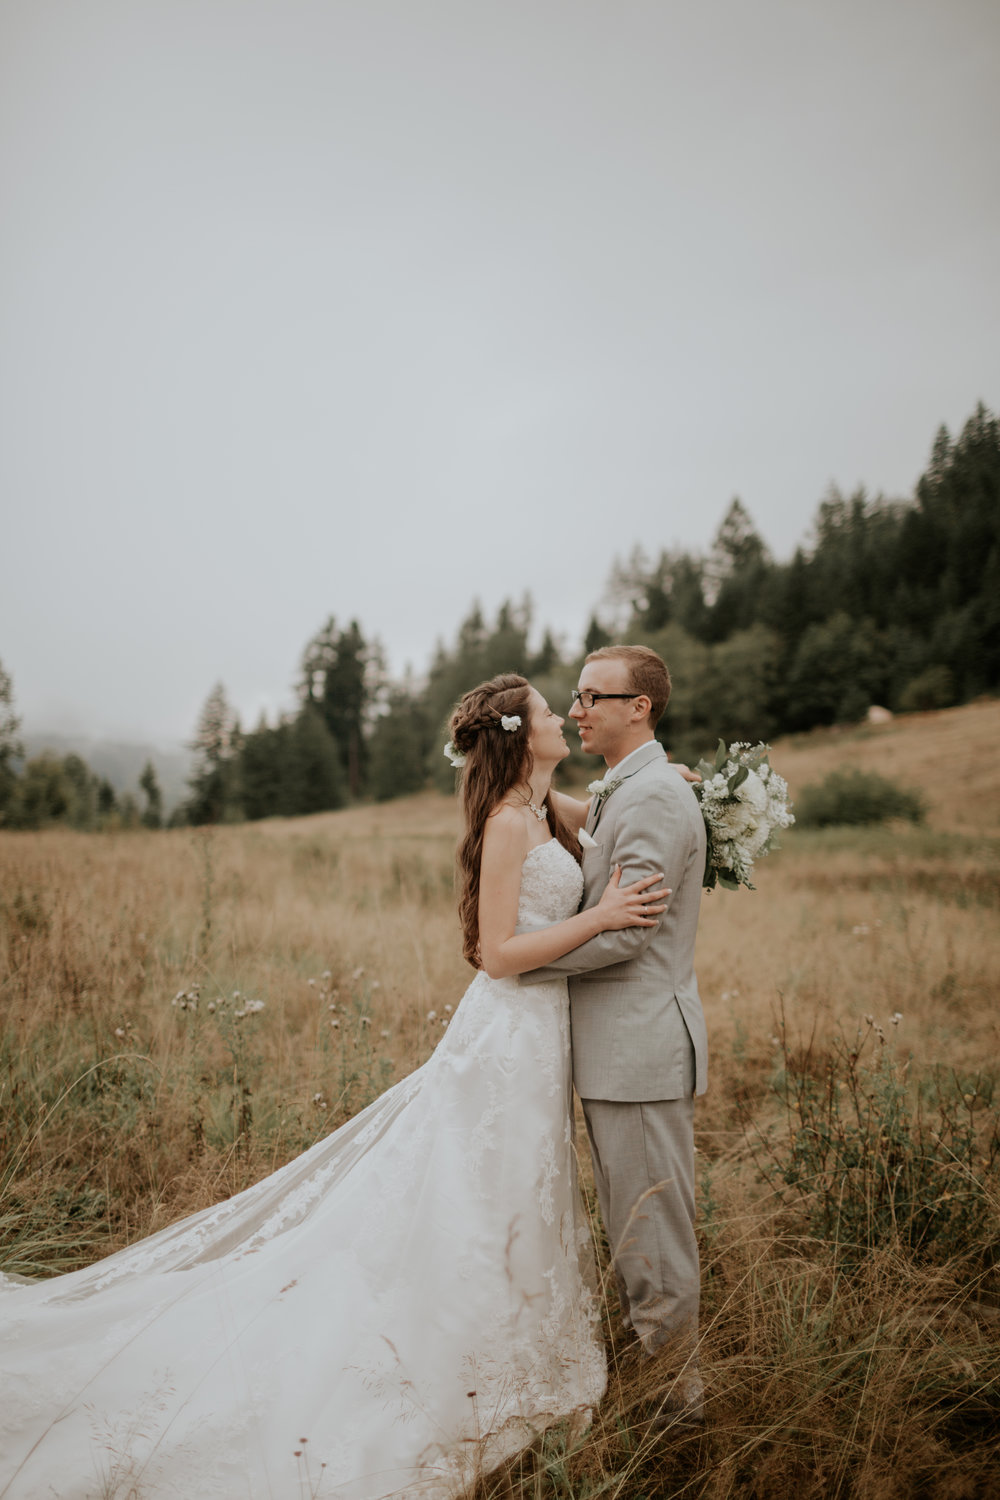 Port-Angeles-elopement-wedding-pnw-olympic-peninsula-photographer-portrait-kayladawnphoto-kayla-dawn-photography-olympic-national-park-180.jpg